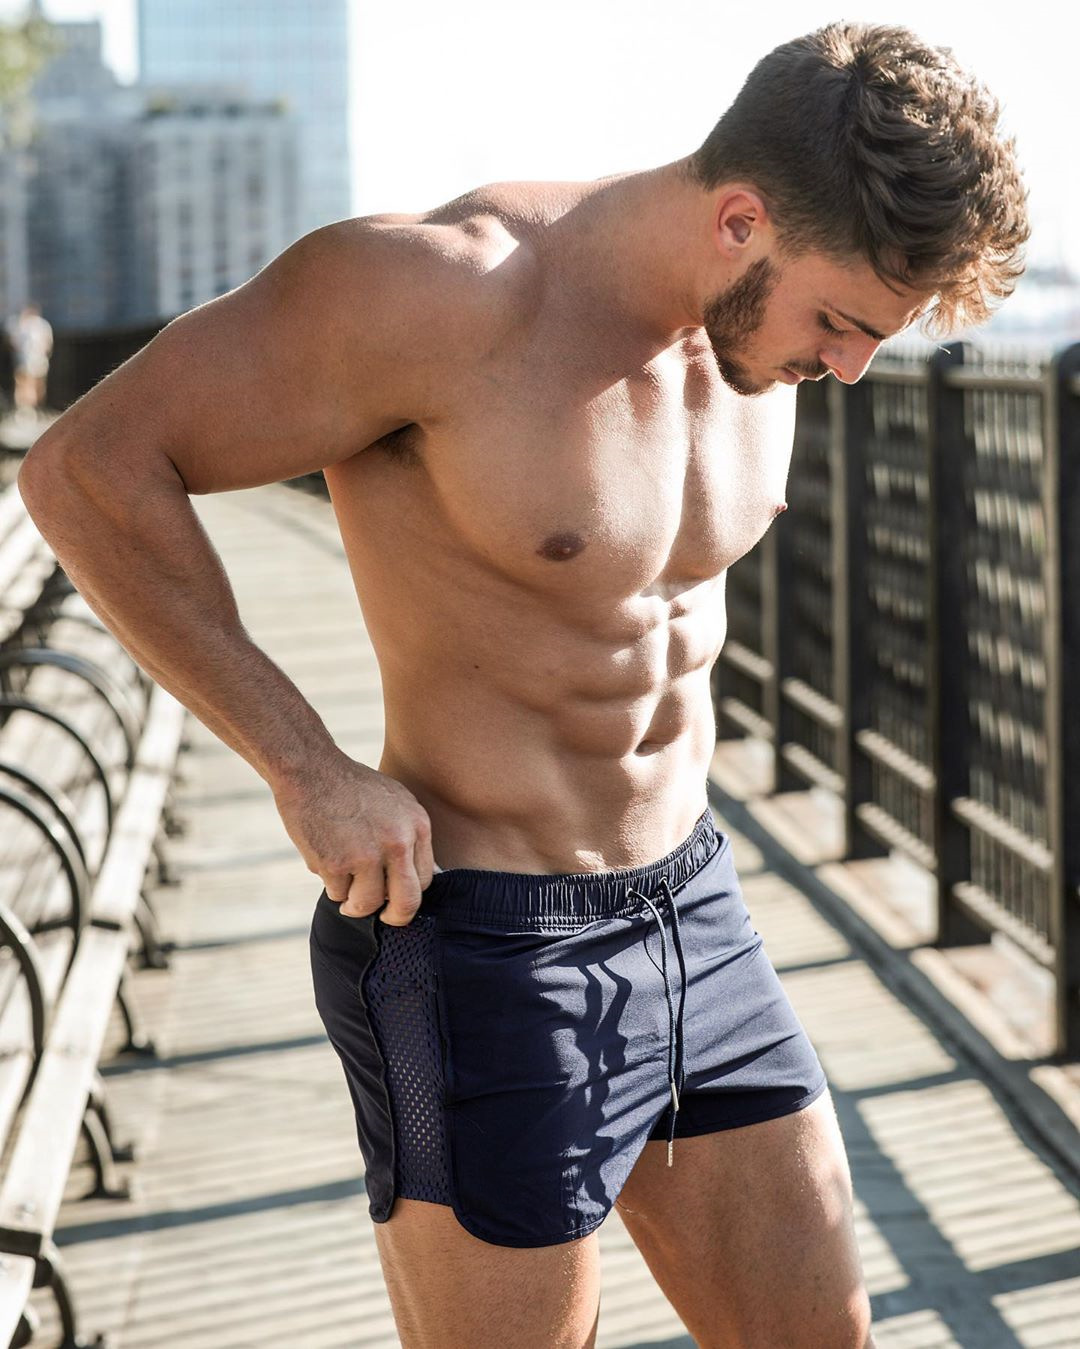 New Summer Stretch Mesh Sub-fitness Training Sprint Sports Shorts Male Patchwork Quick-dry Shorts